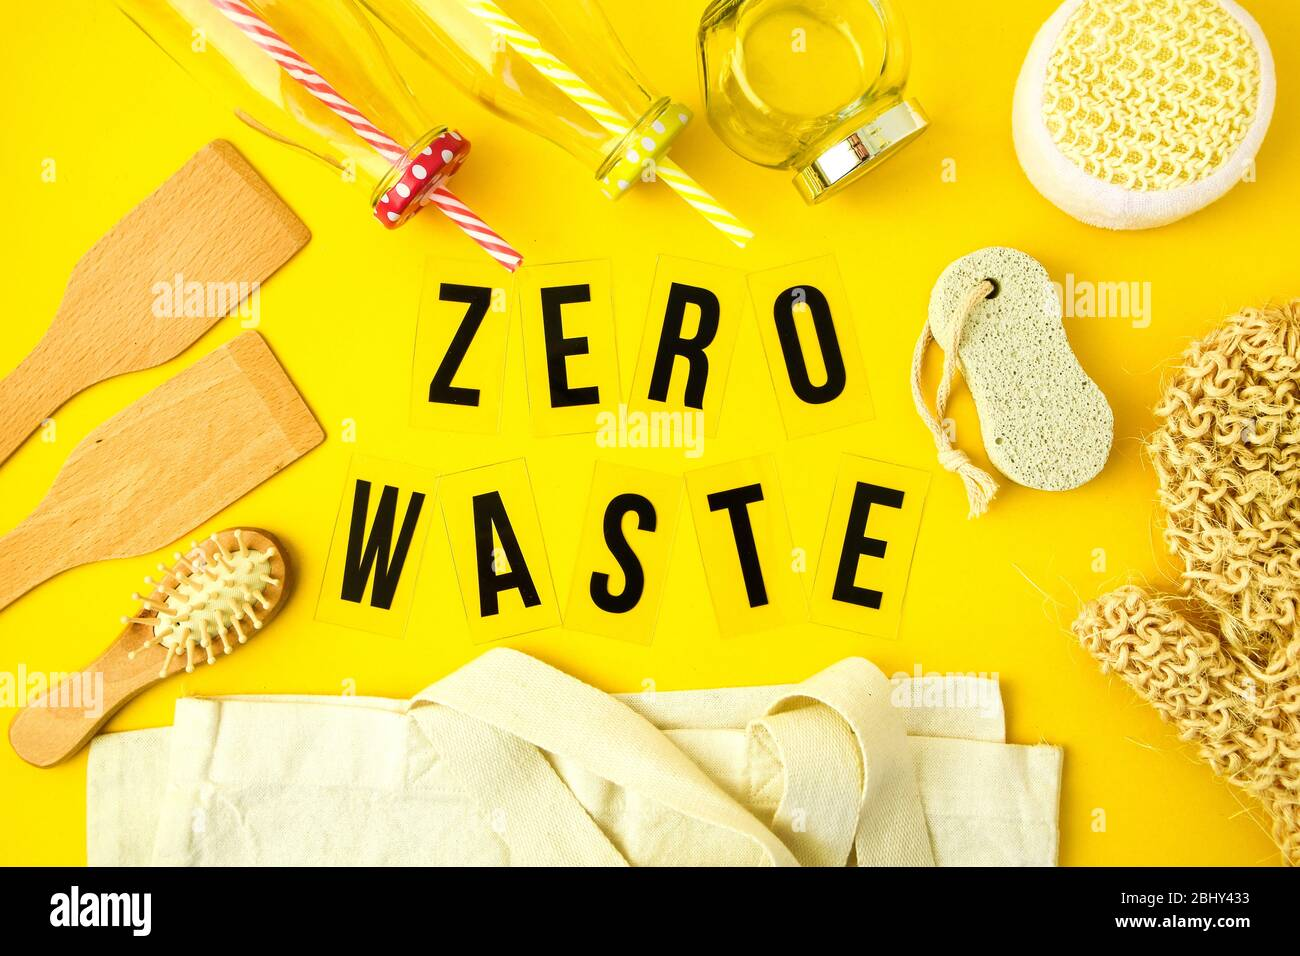 Zero waste concept. Textile eco bags, glass jars, wooden hair brush and washcloth and on yellow background with Zero Waste black text in center. Stock Photo